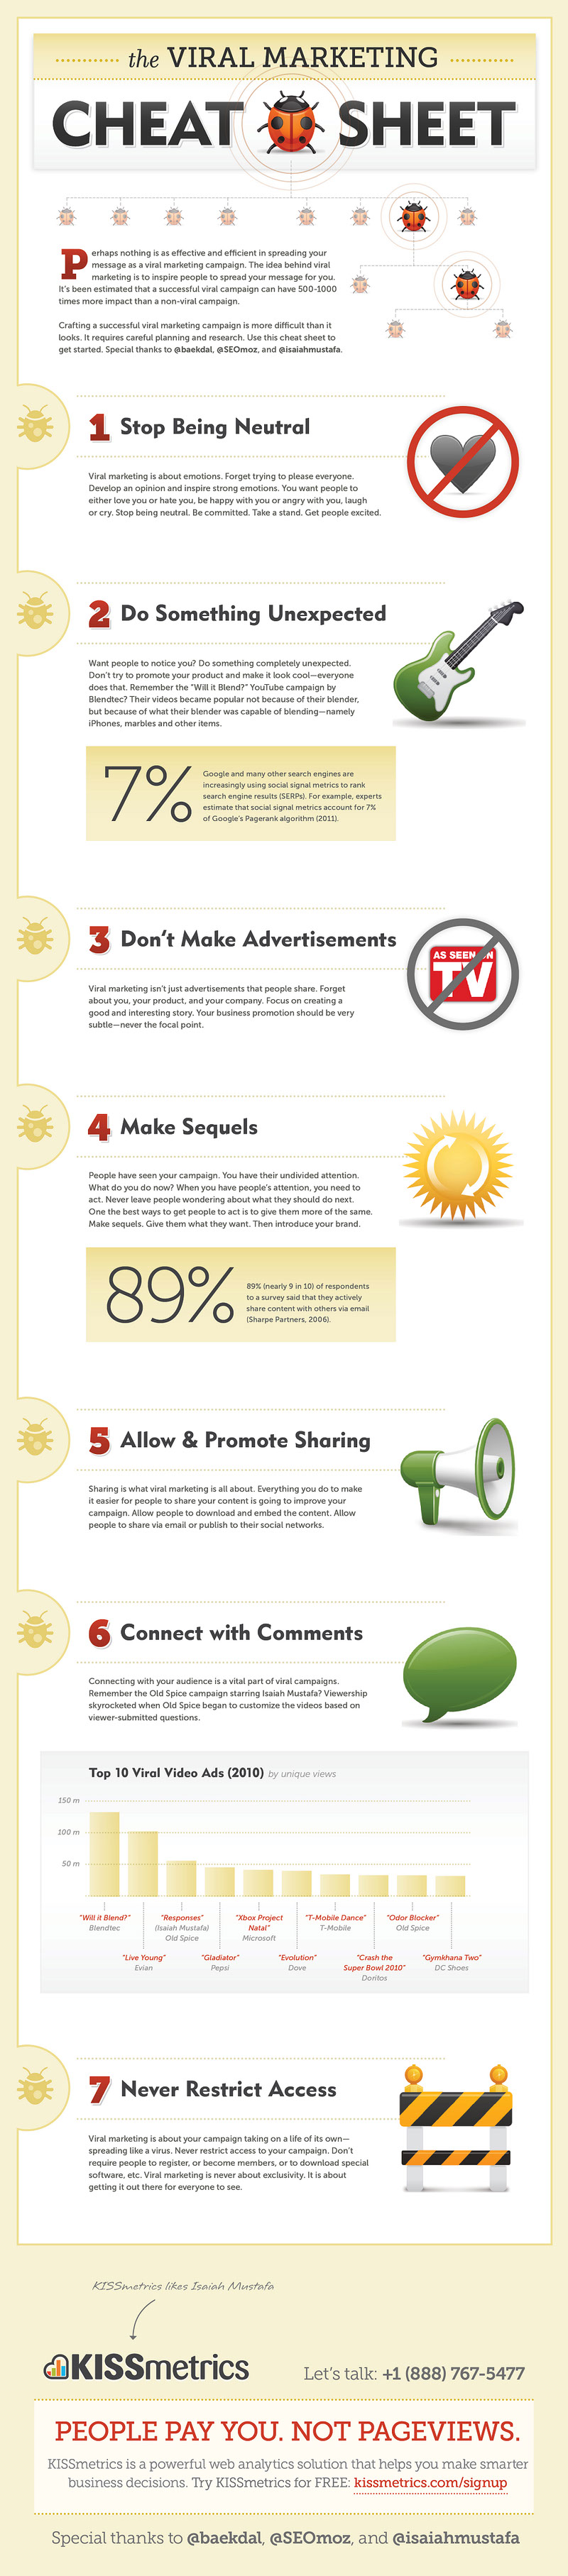 Viral-Marketing-Cheat-Sheet-infographic